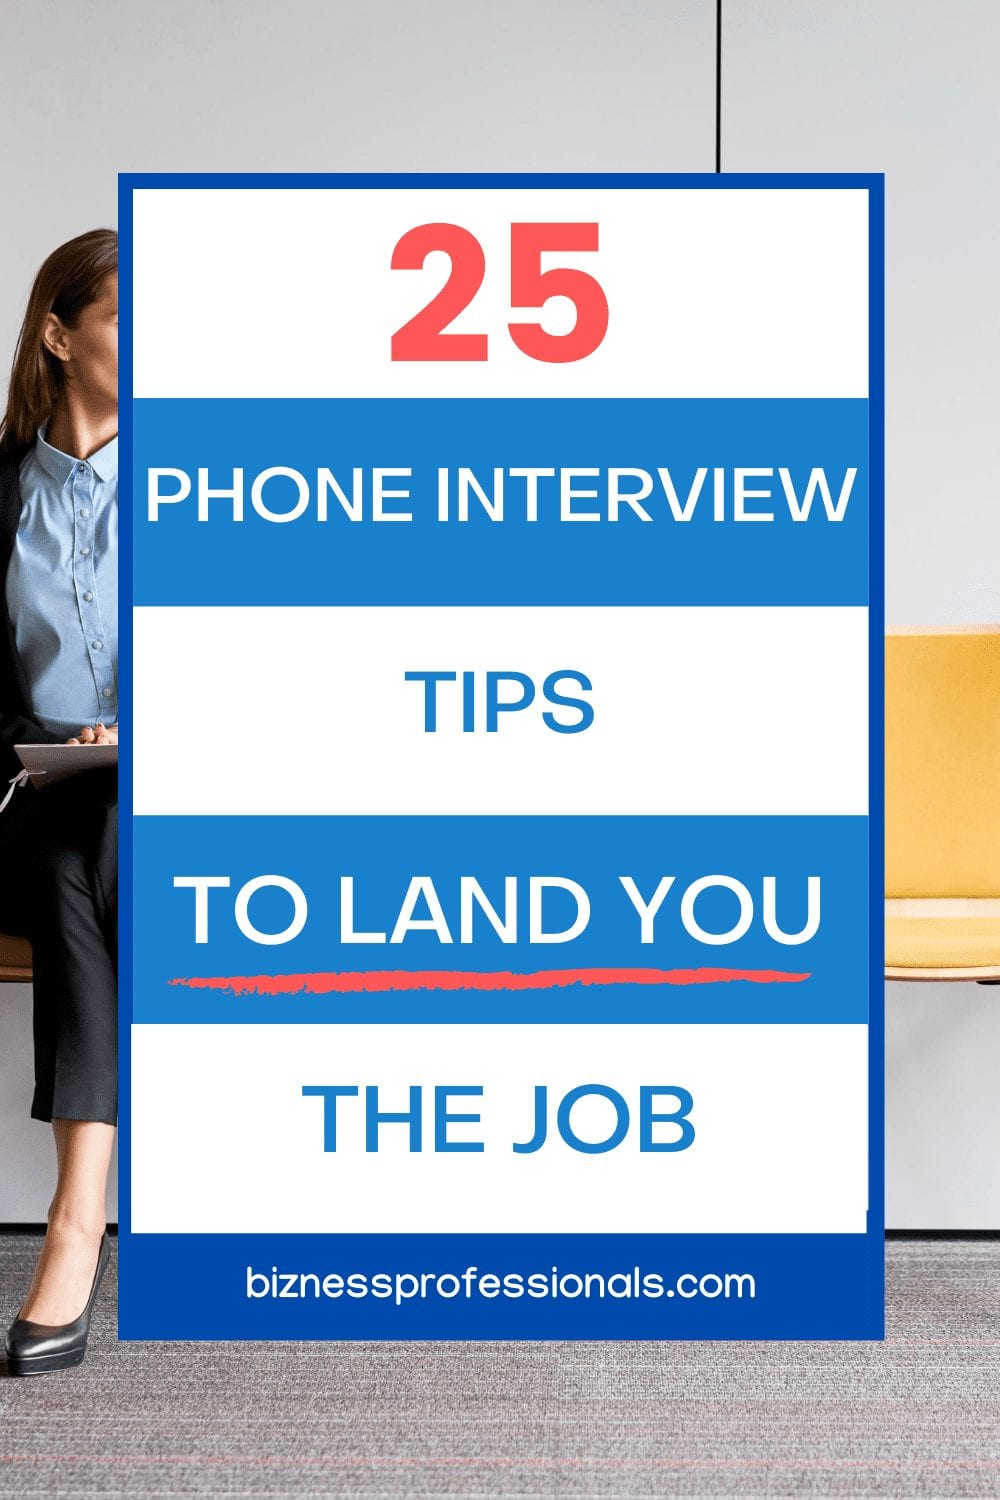 phone interview tips to land you the job